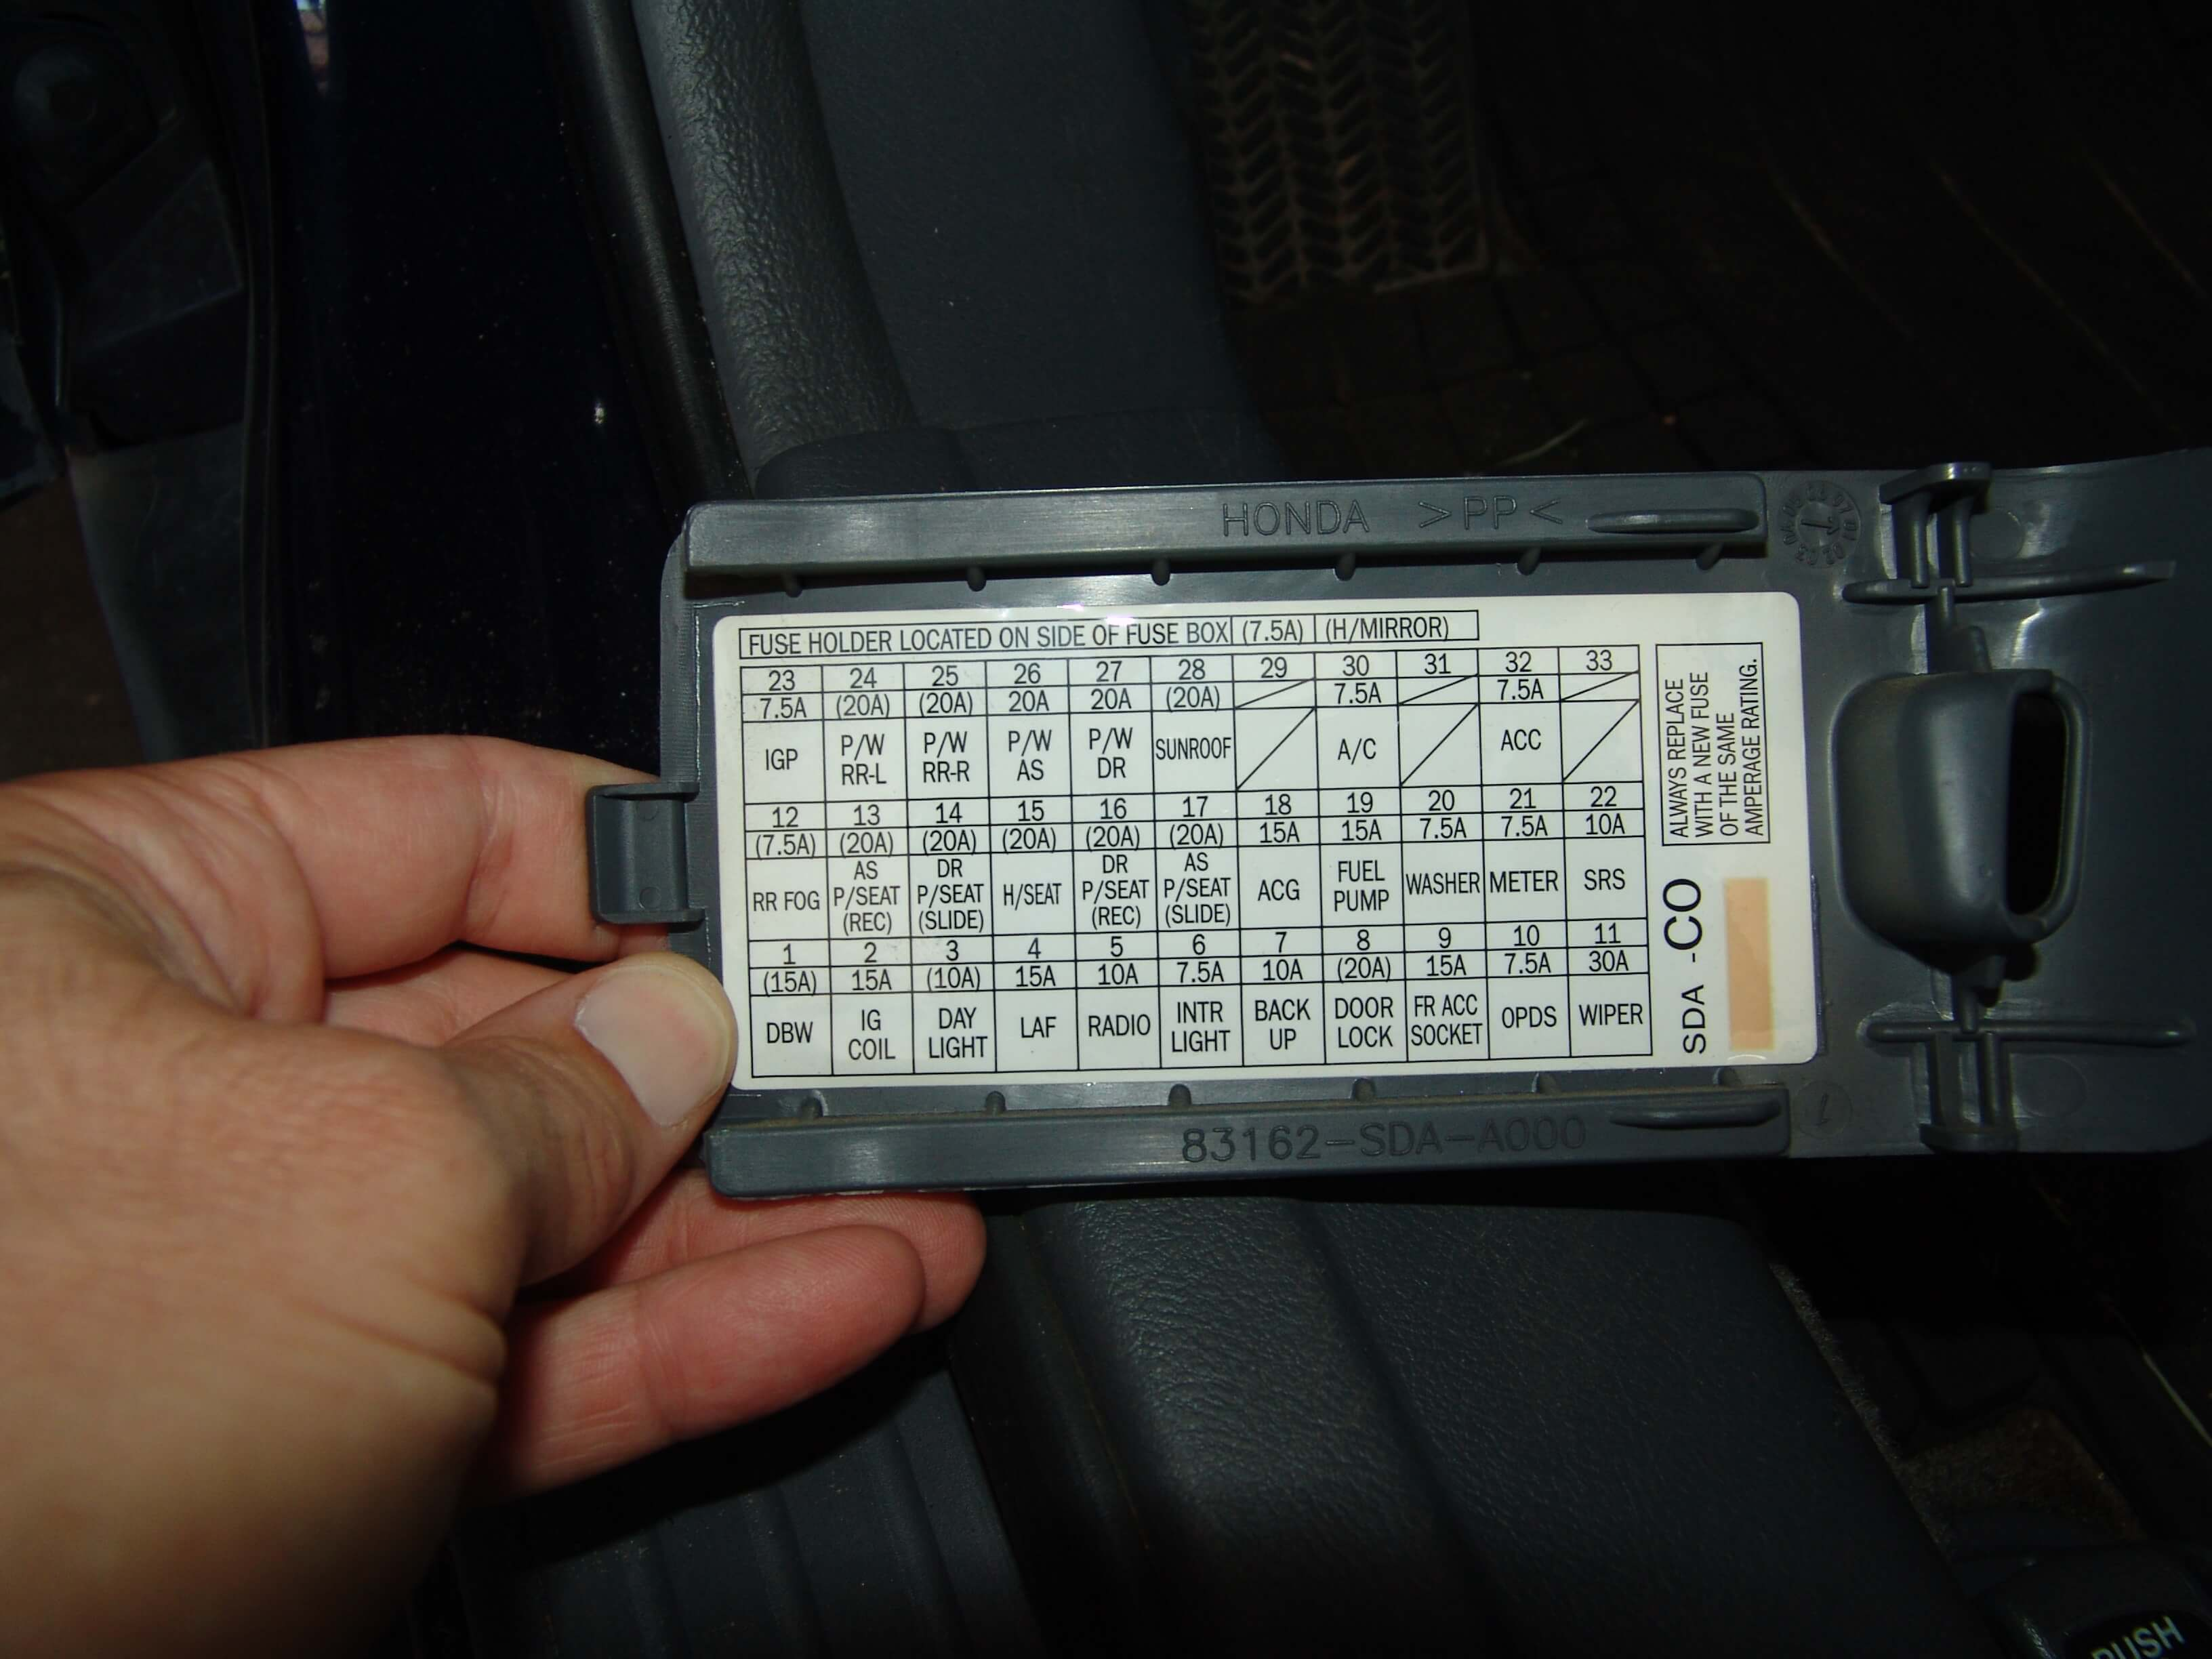 honda accord 06 fuse box - wiring diagram schema loan-shape -  loan-shape.atmosphereconcept.it  atmosphereconcept.it